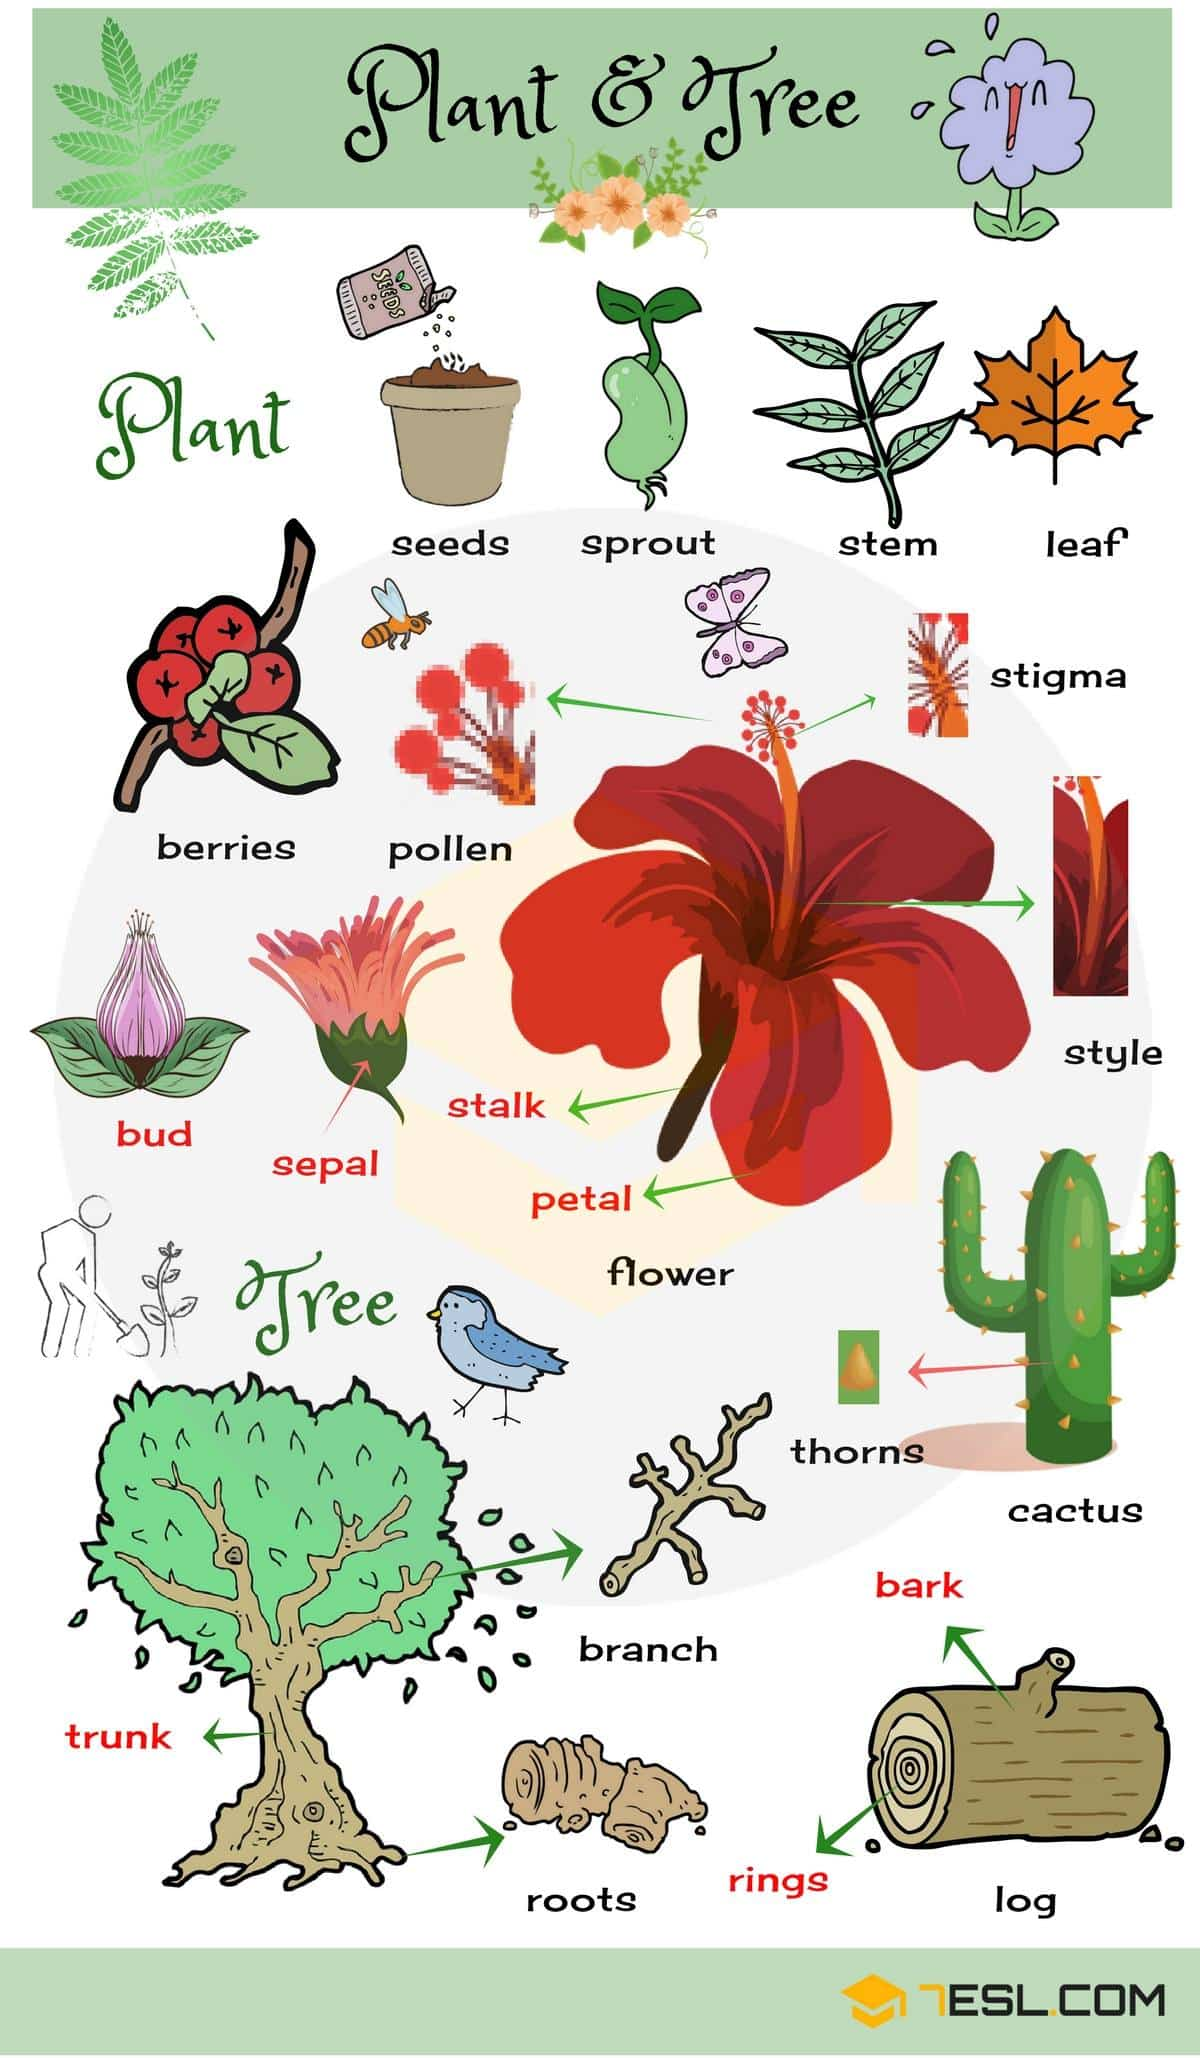 List of Plant and Flower Names